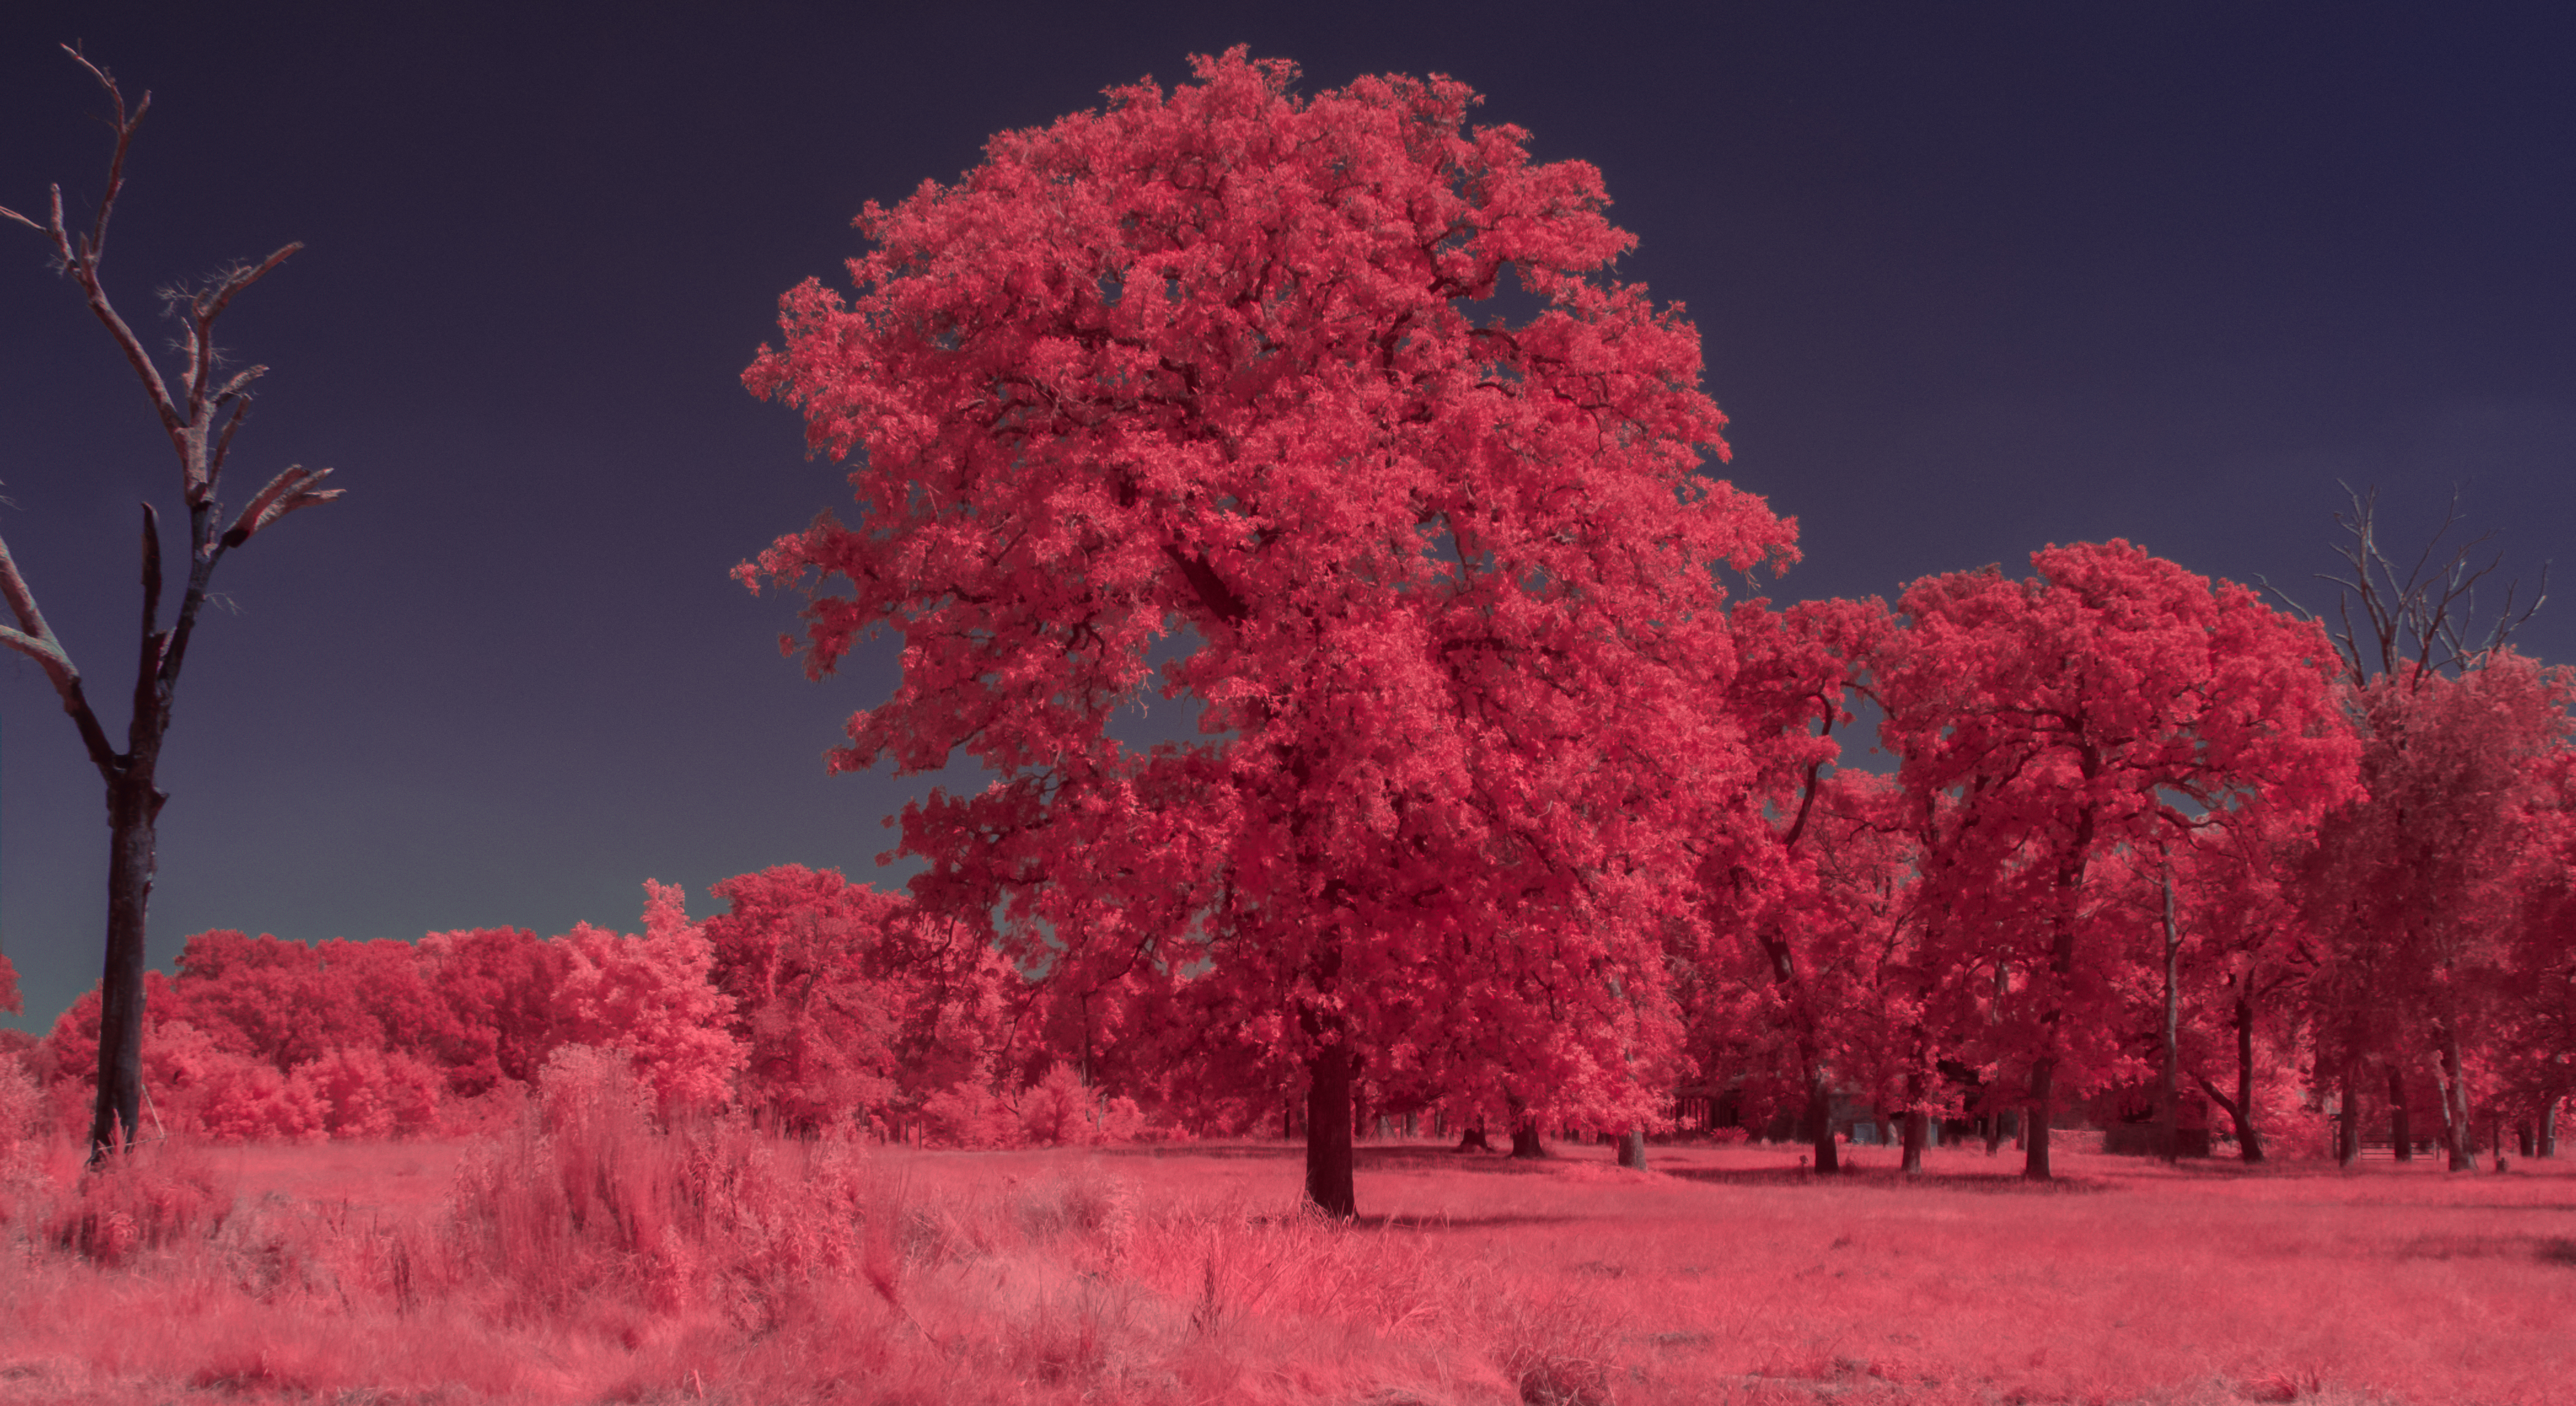 Aerochrome Tree in Infrared